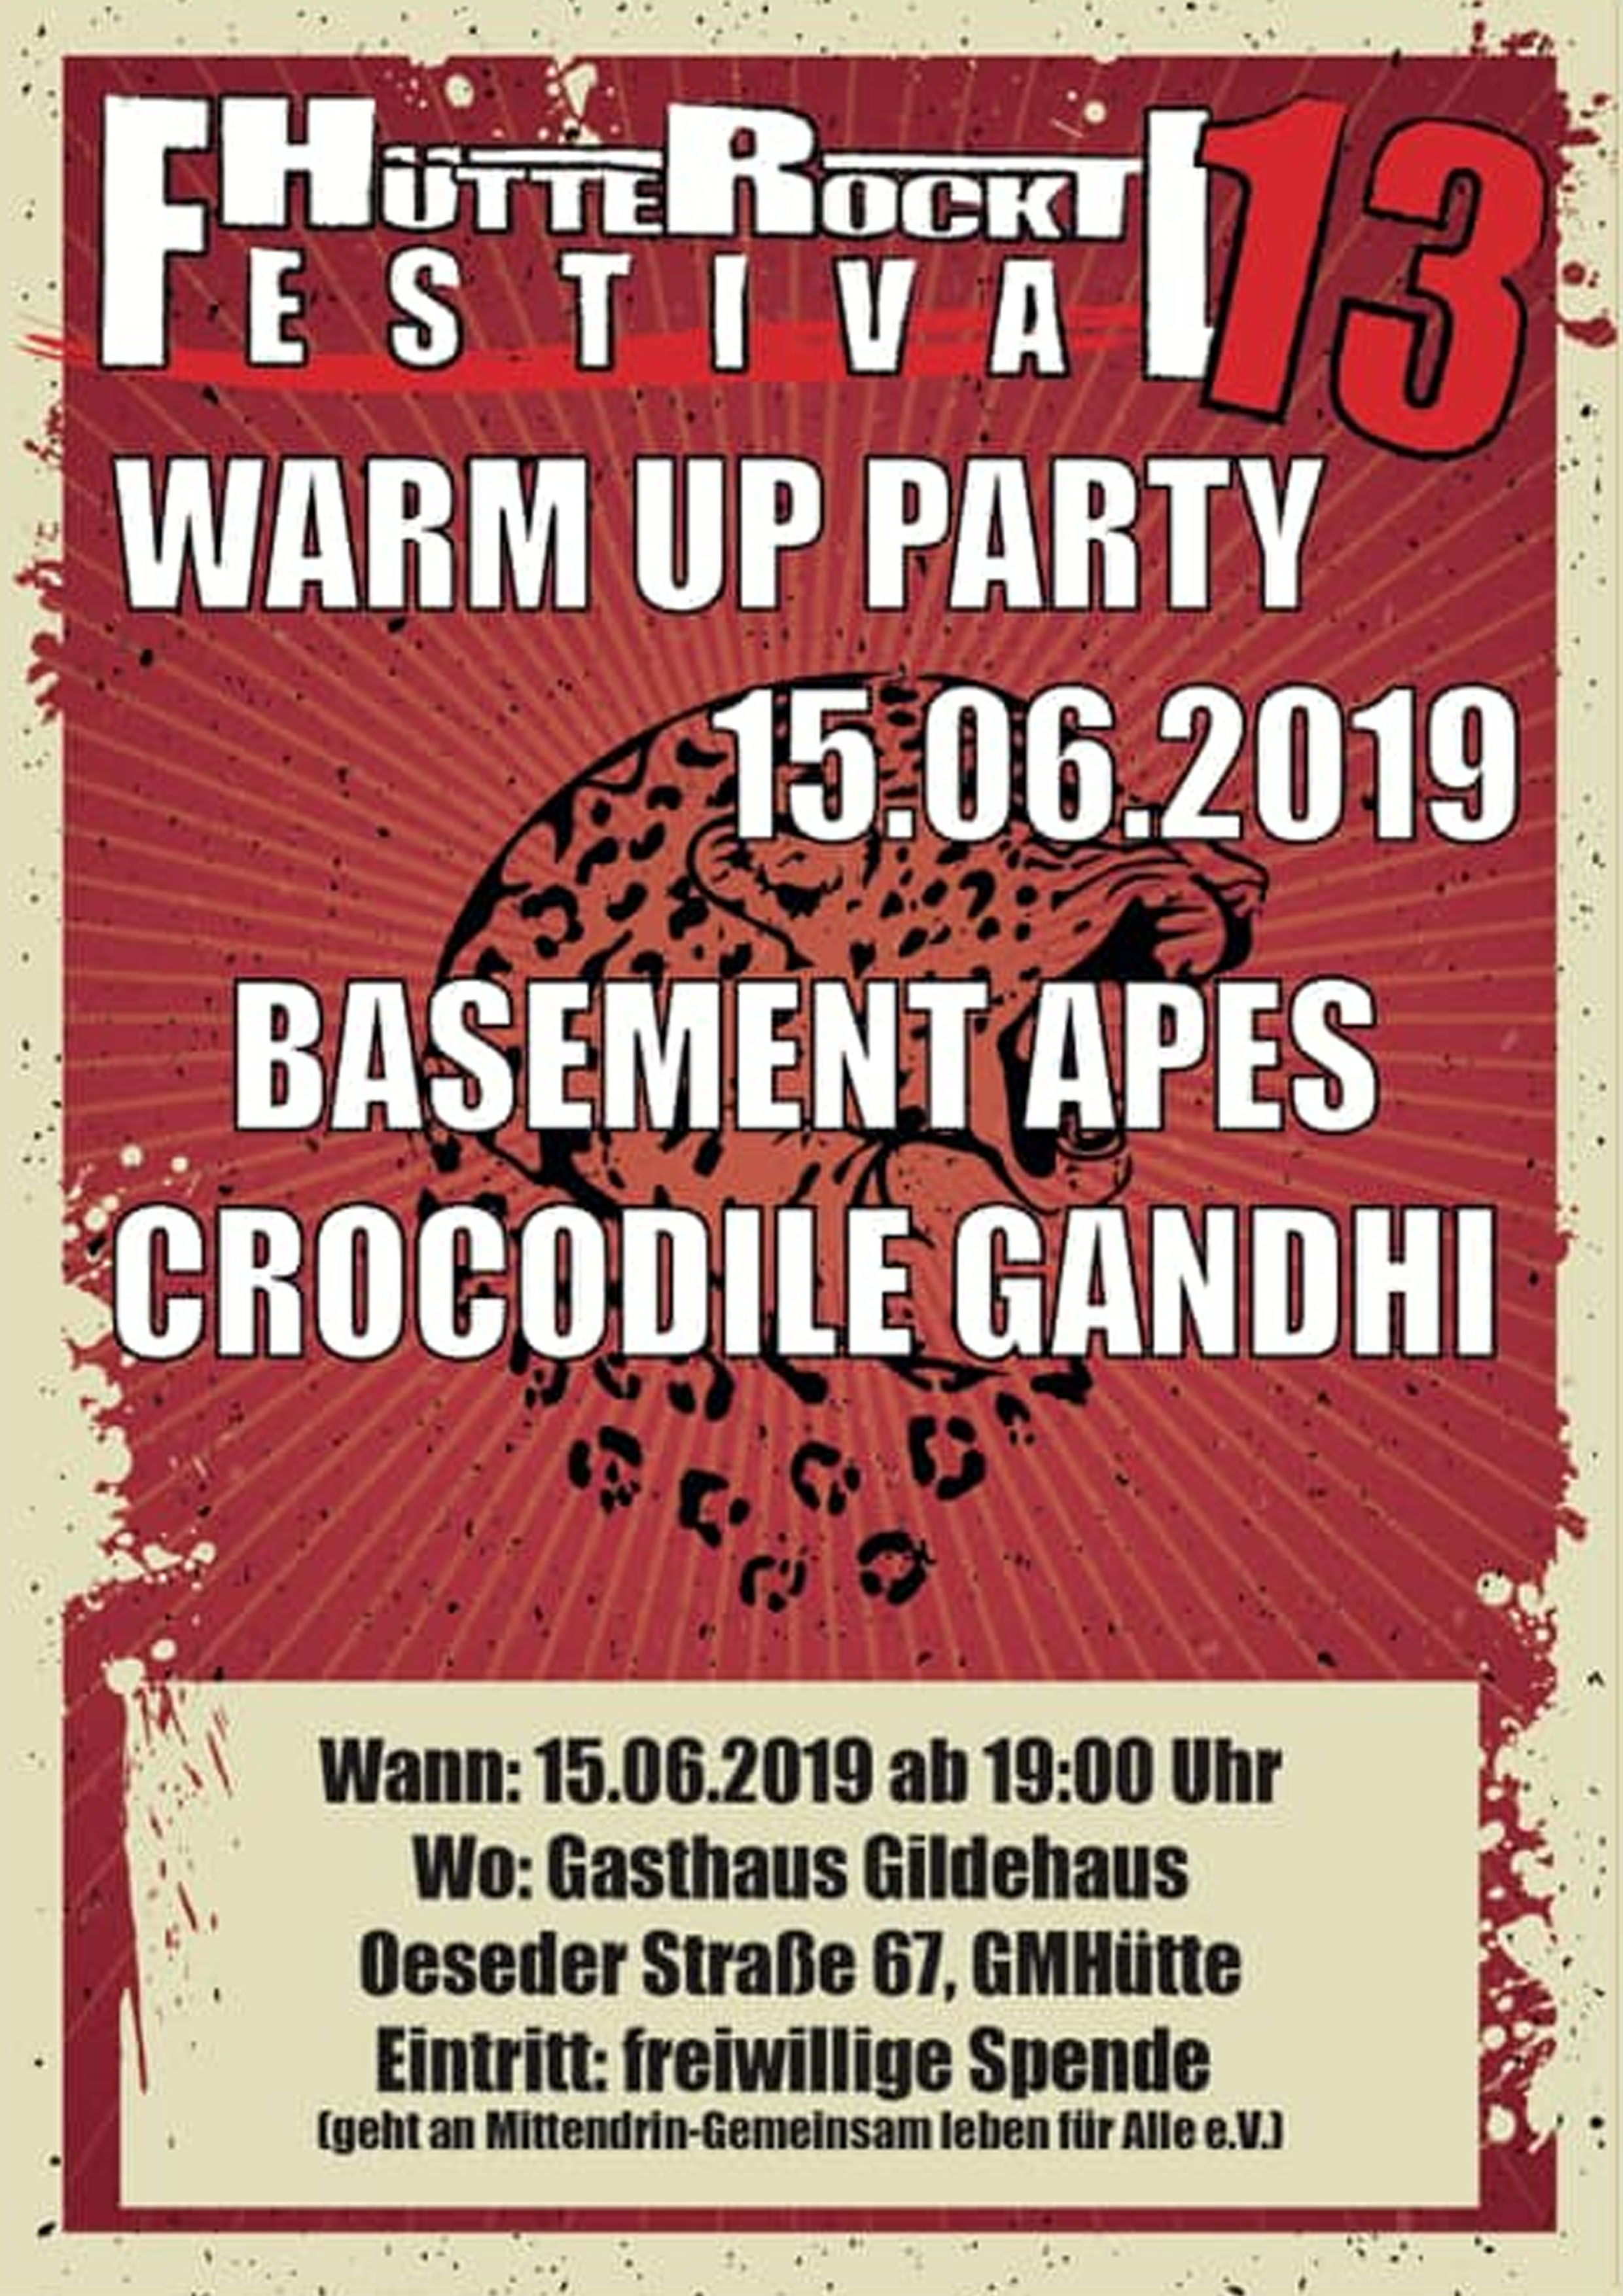 Warm Up Party am 15.06.2019